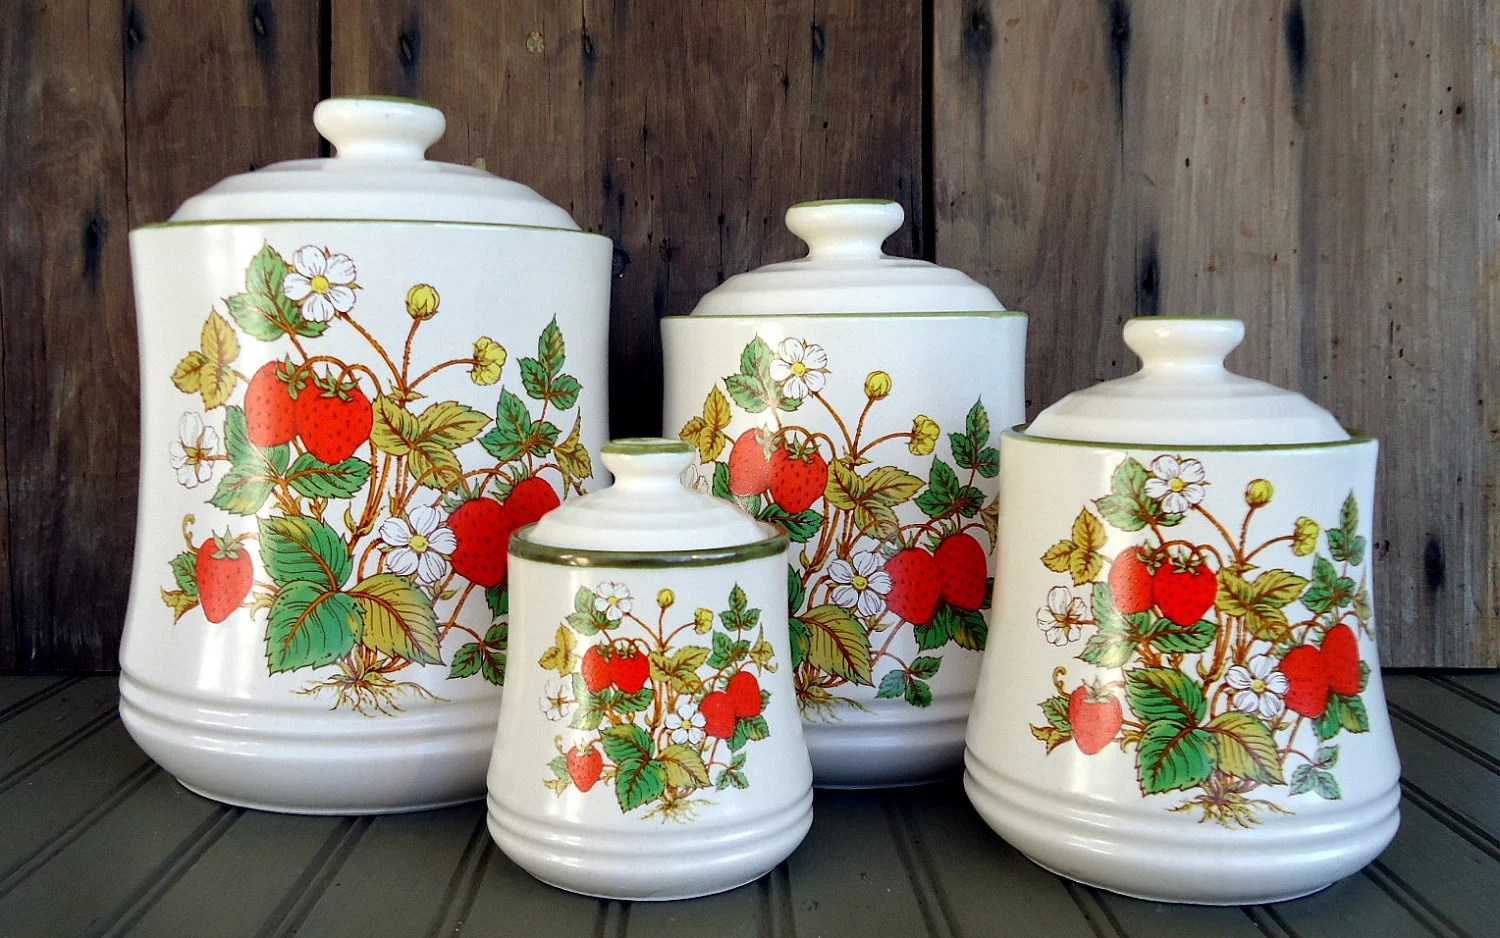 Kitchen Set Name Vintage Strawberry Canister Set Japan Retro Ceramic Set